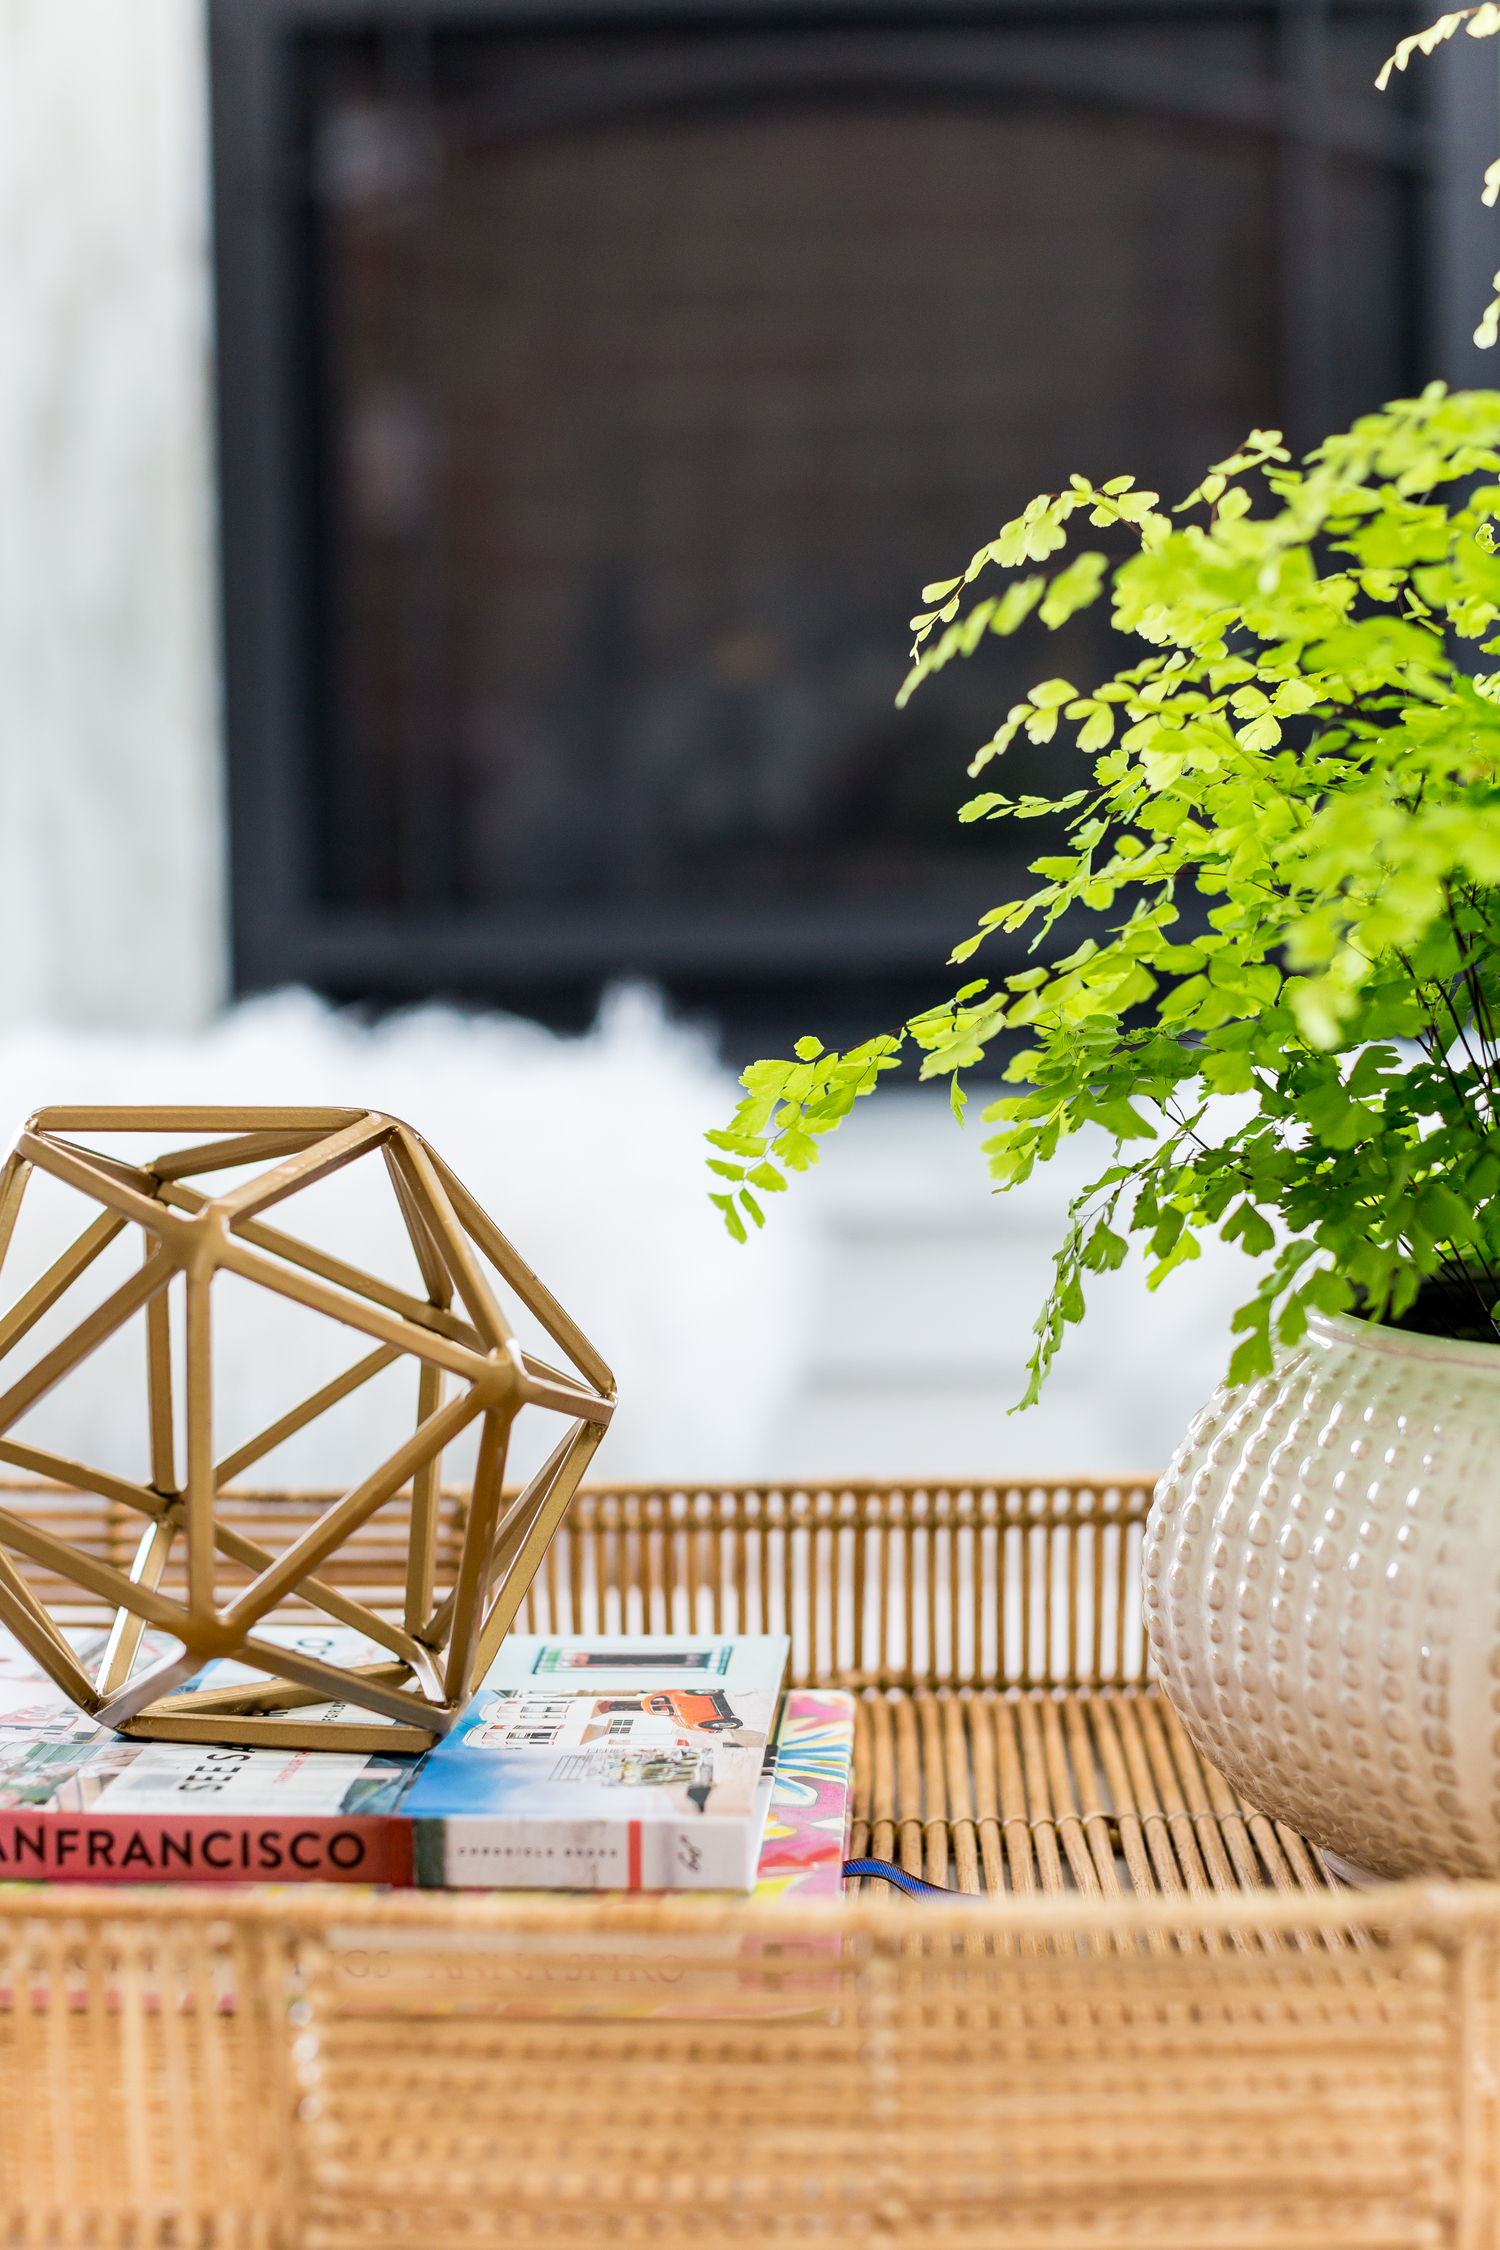 Decorative shape and plant on coffee table